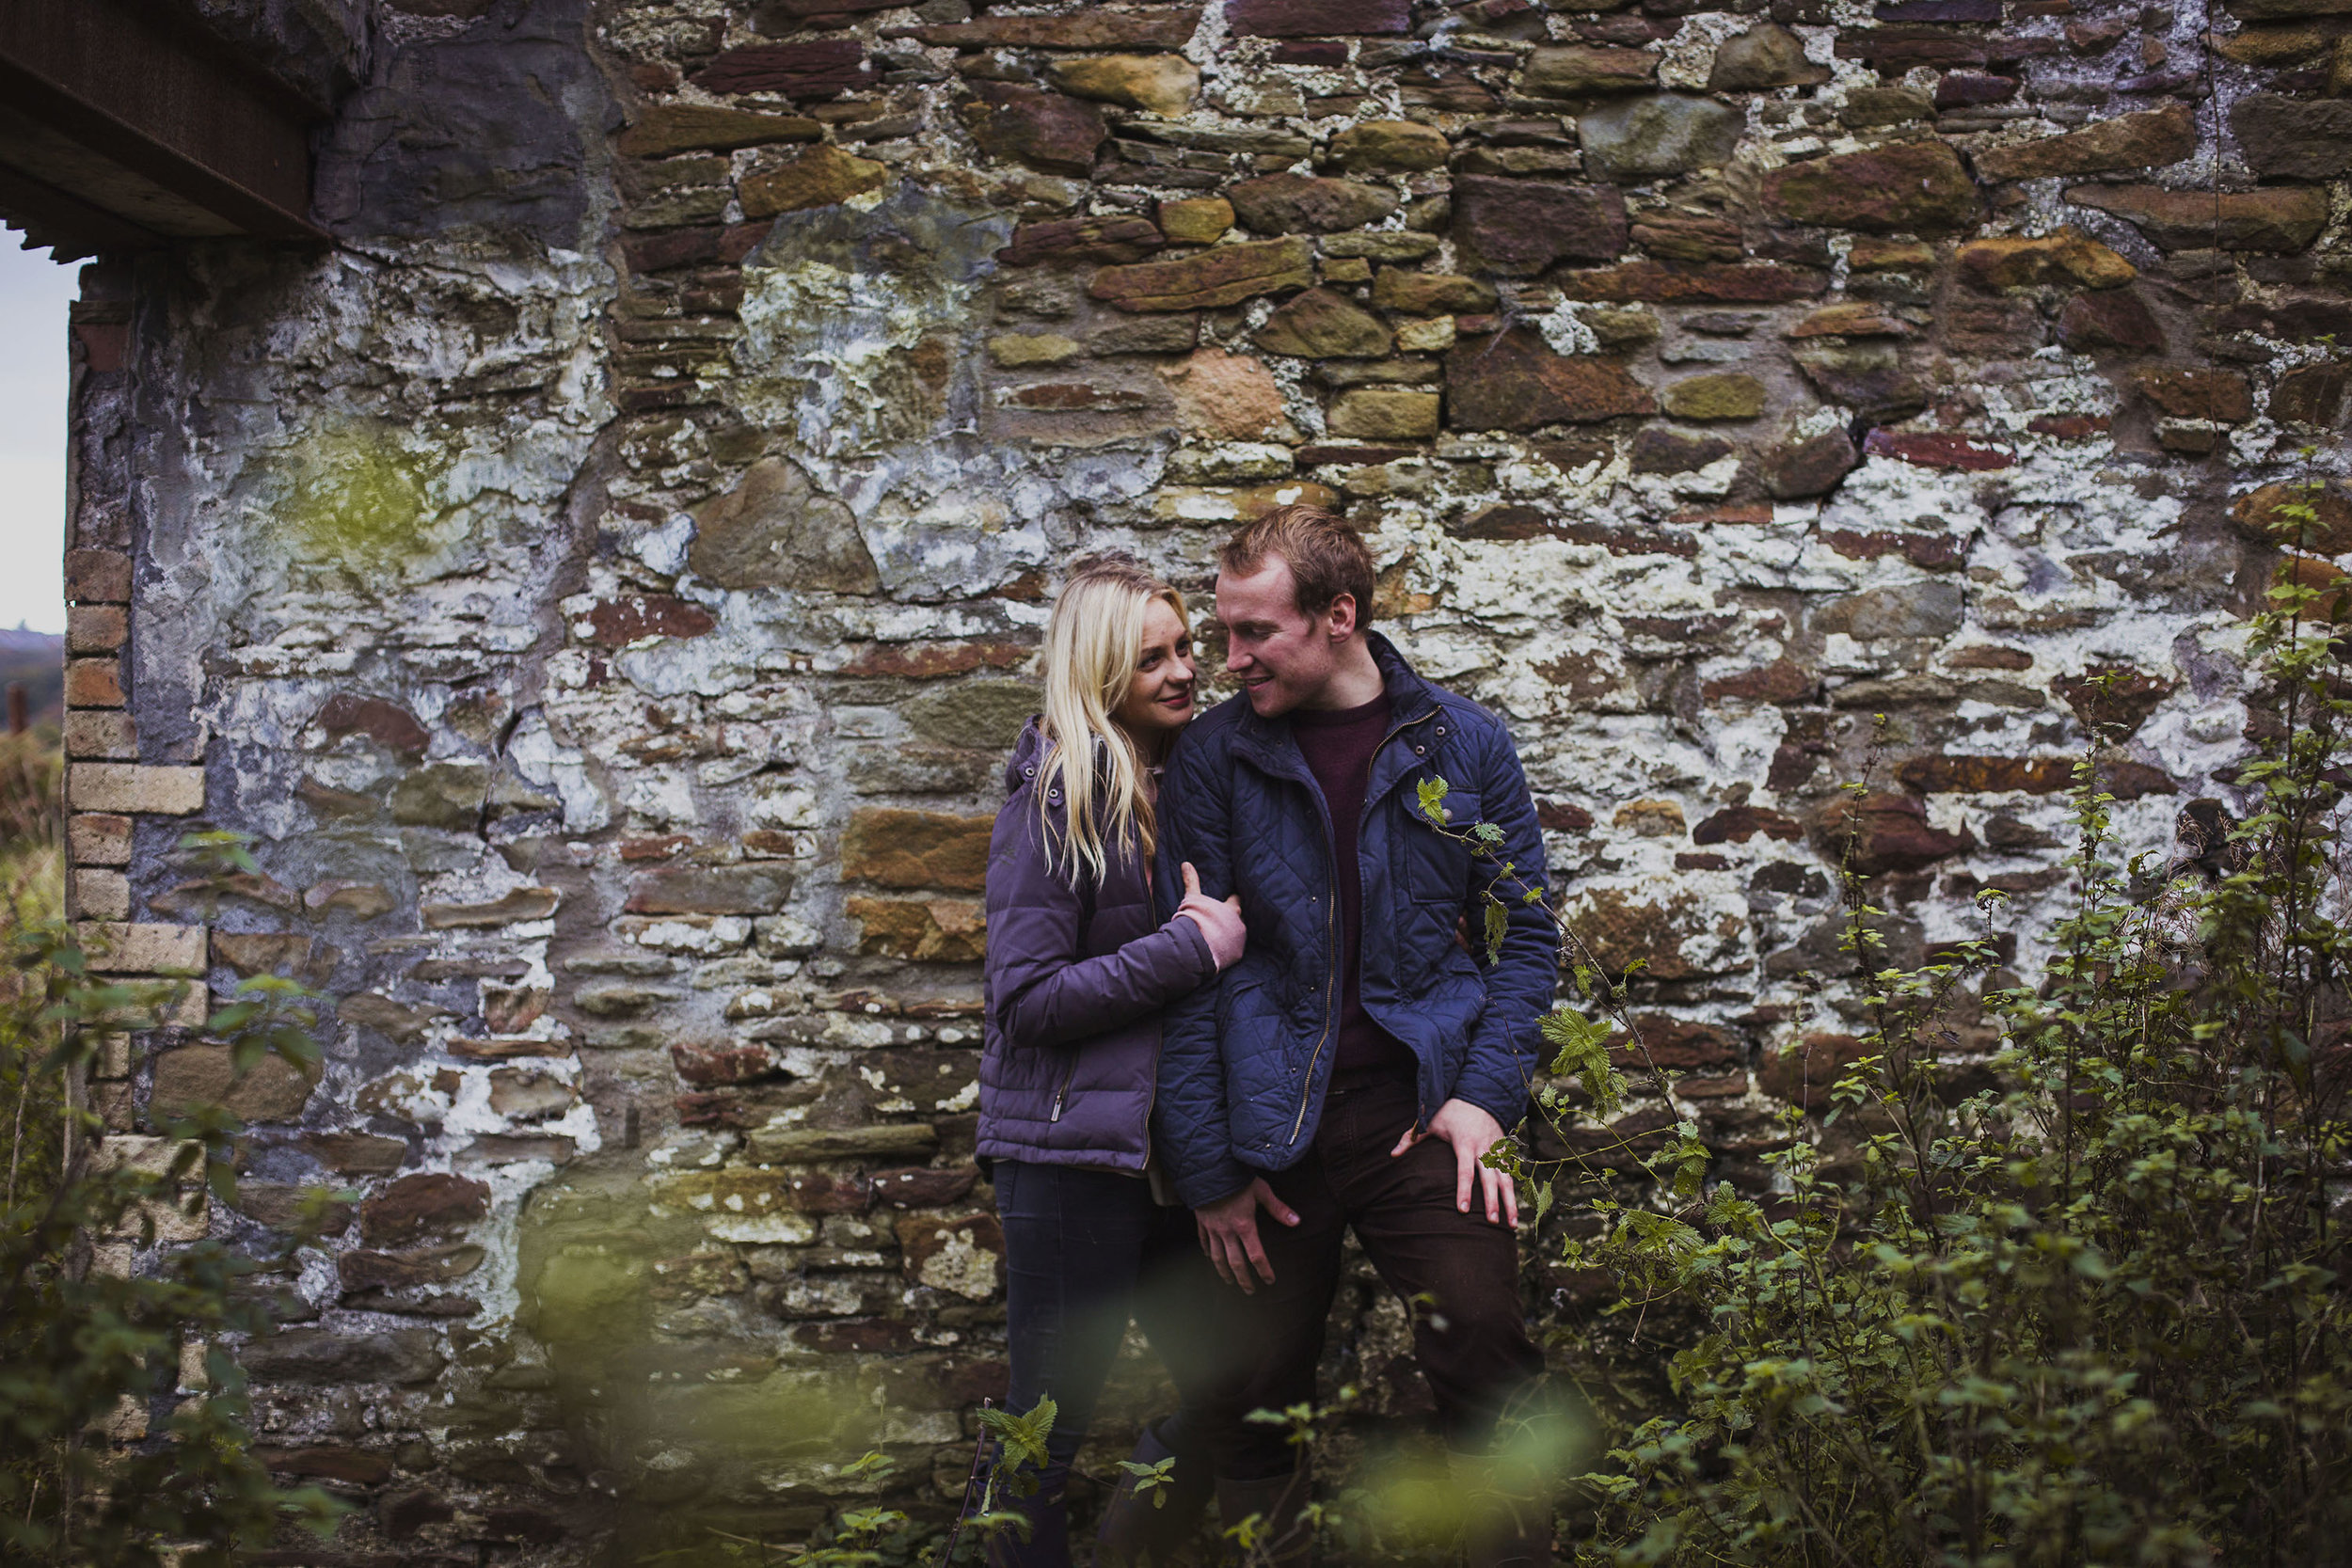 Chris_and_Lucy_Prewed_49.jpg